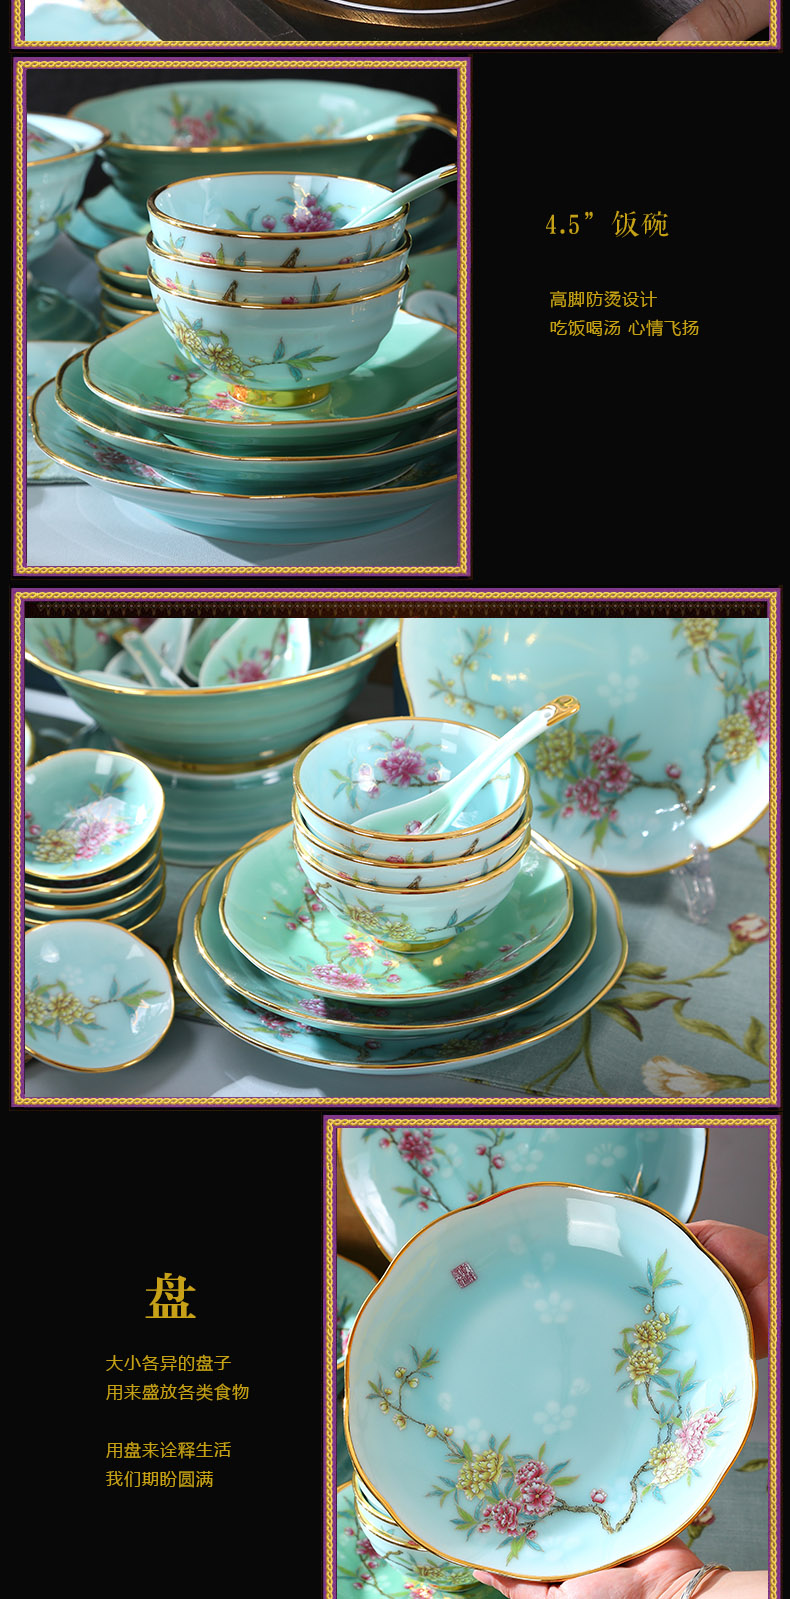 Jingdezhen Jingdezhen celadon tableware suit household of Chinese style up phnom penh dish combination of high - grade dishes three color combinations